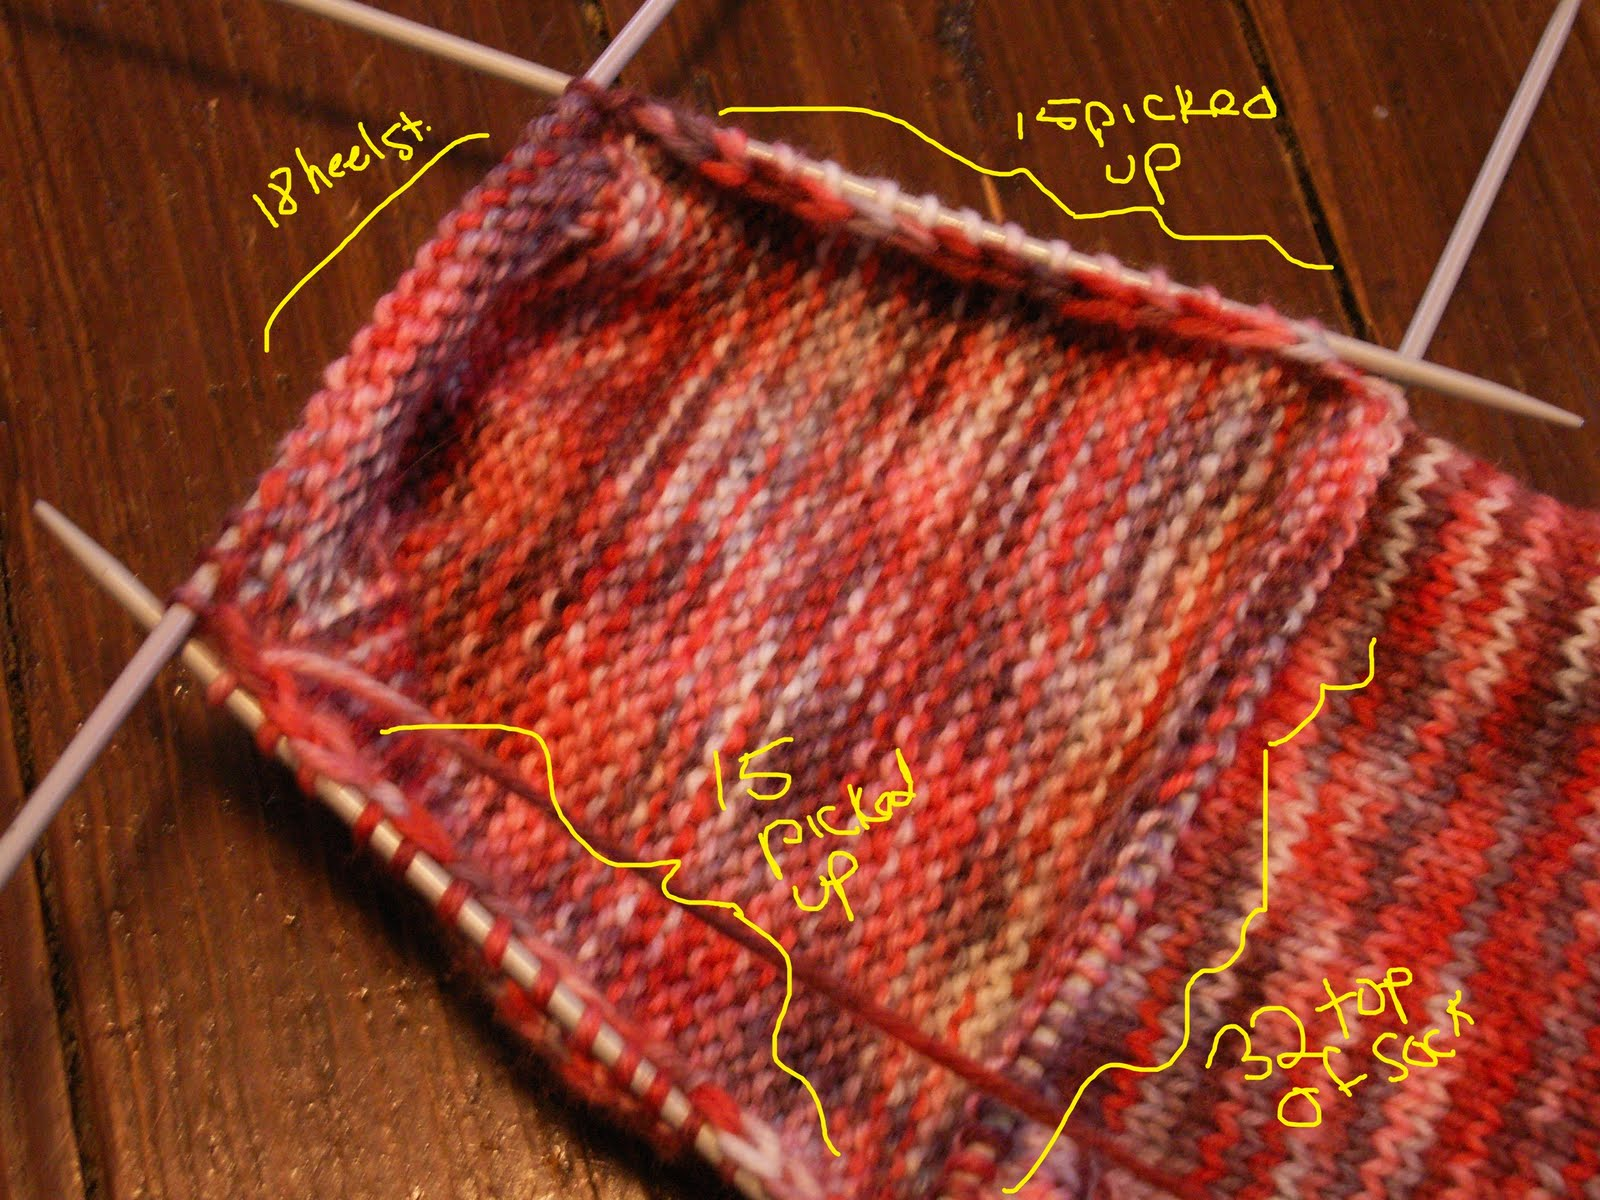 Mistress of Knitting: Knitting Top-Down Socks, Part 3 - Picking up stitches f...